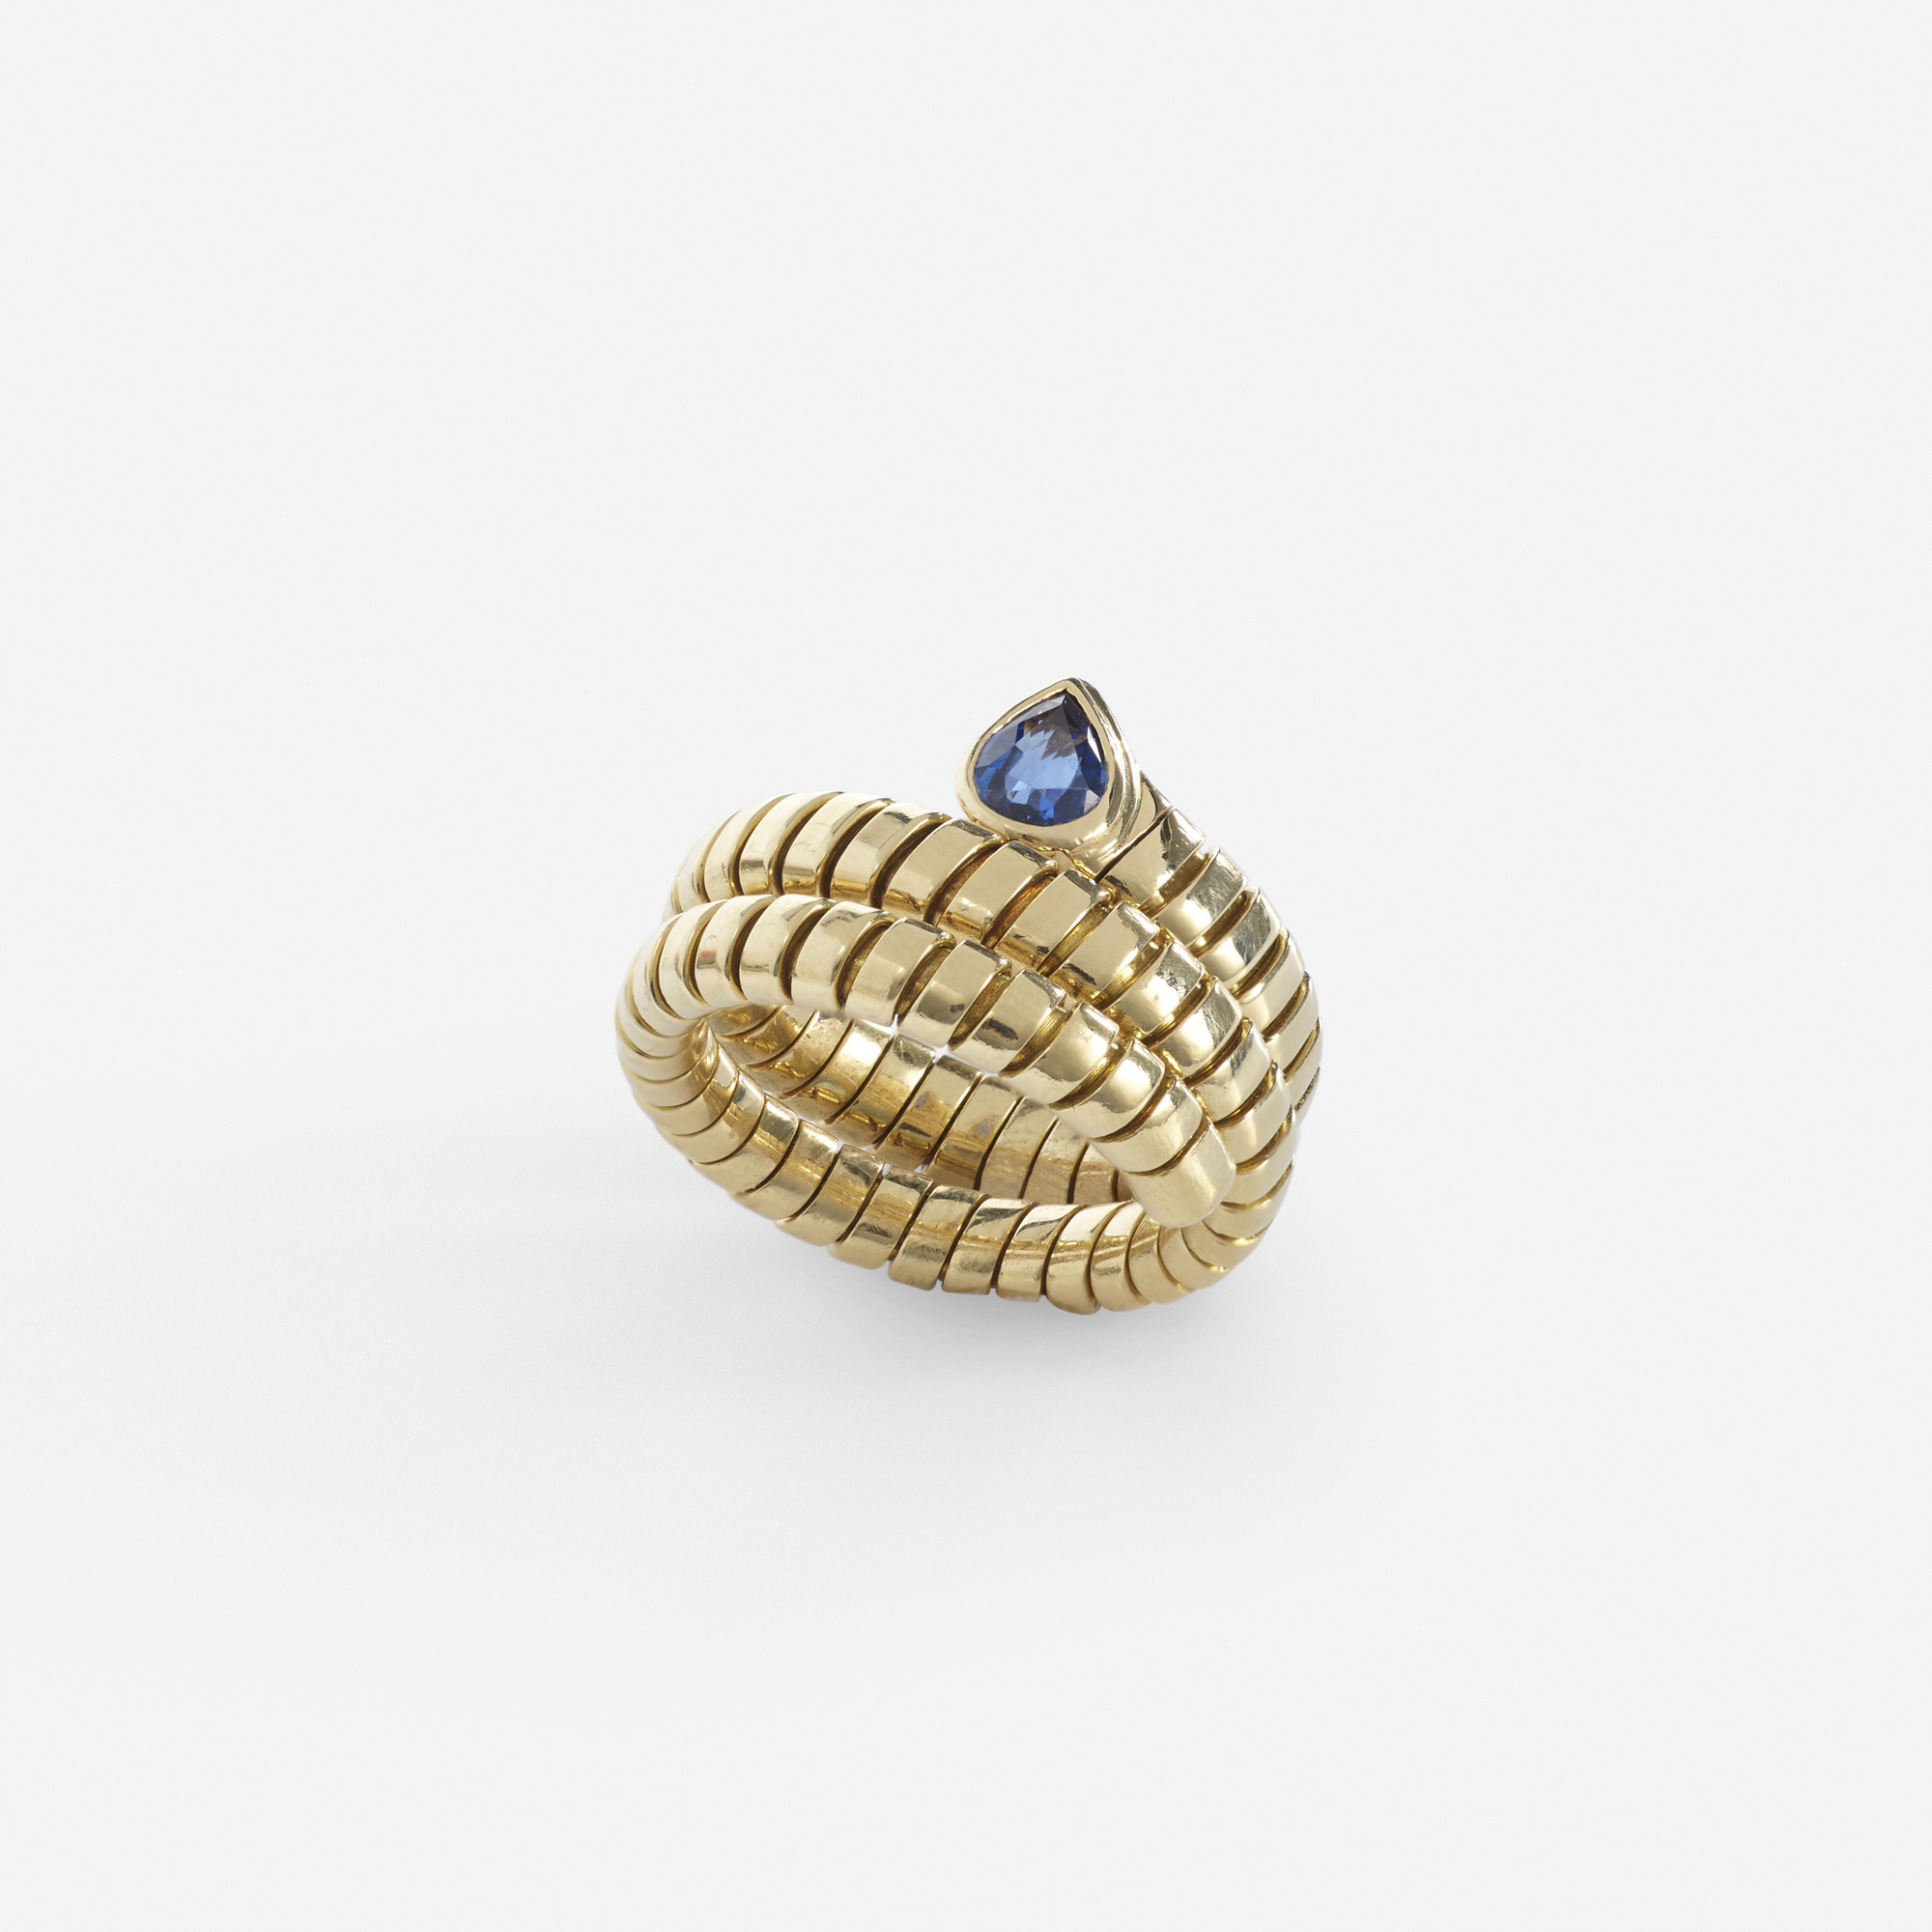 201: Bulgari / A gold and sapphire Tubogas ring (1 of 2)